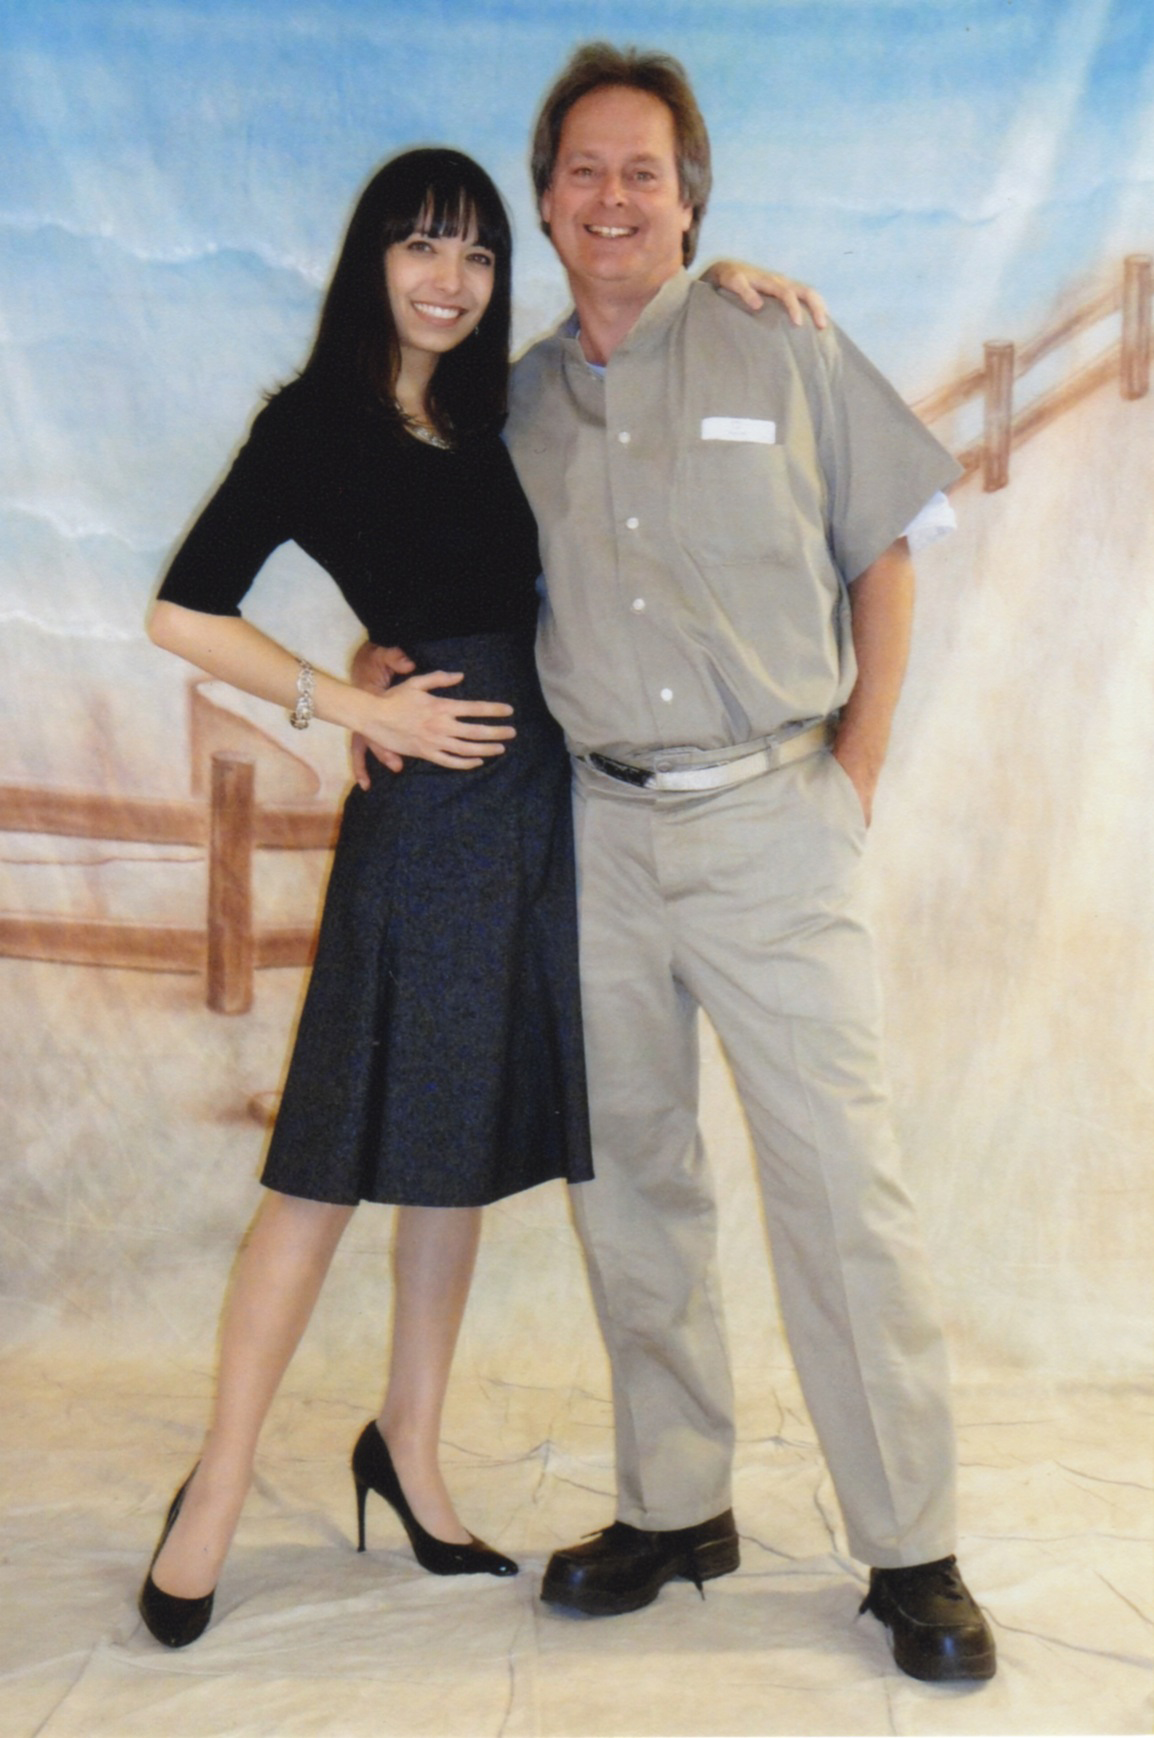 Jodie Emery and Marc Emery